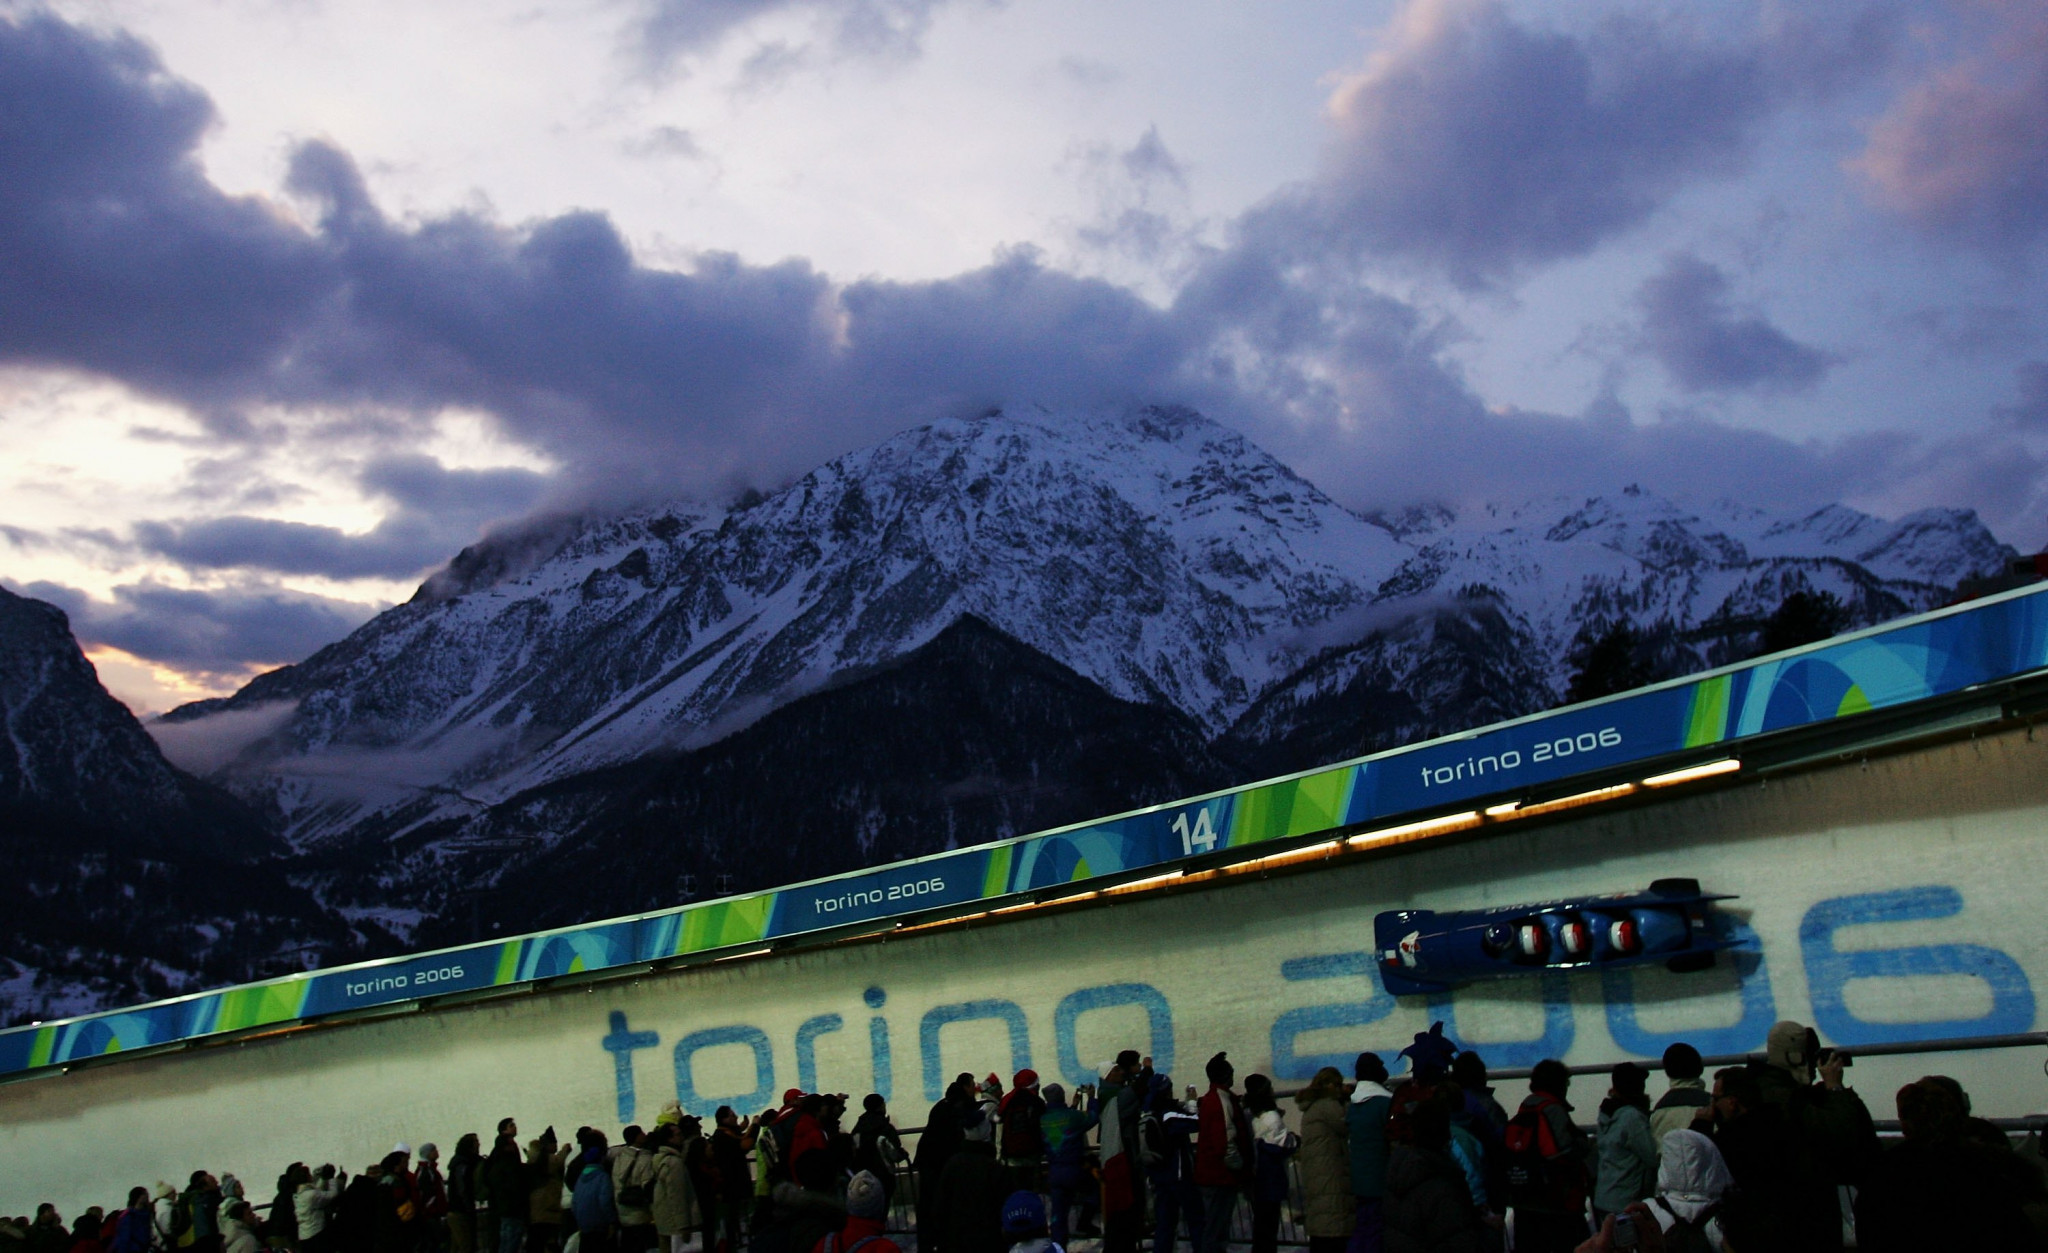 Italy's national teams to train at Turin 2006 sliding venue ahead of new season